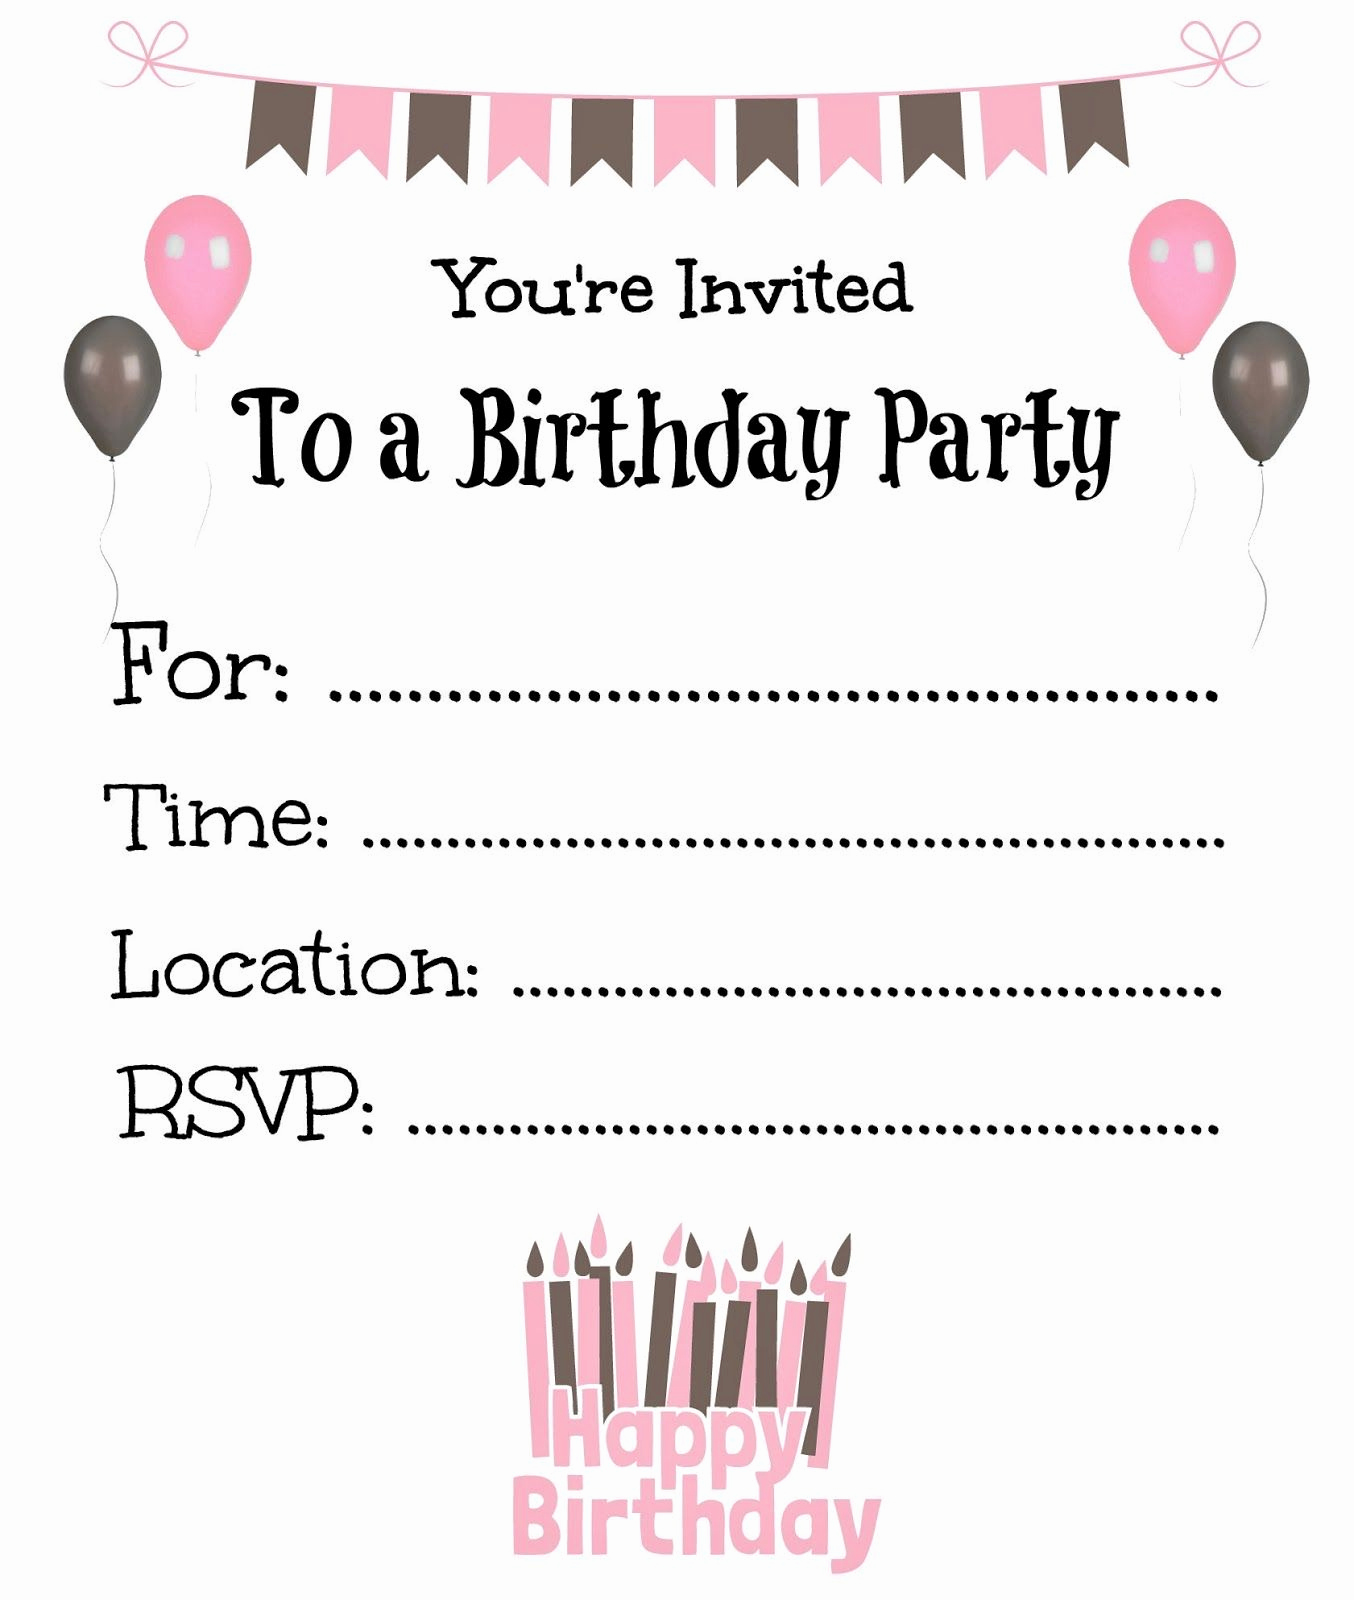 Free Birthday Party Invitation Template Luxury Free Printable Birthday Invitations for Kids Birthday